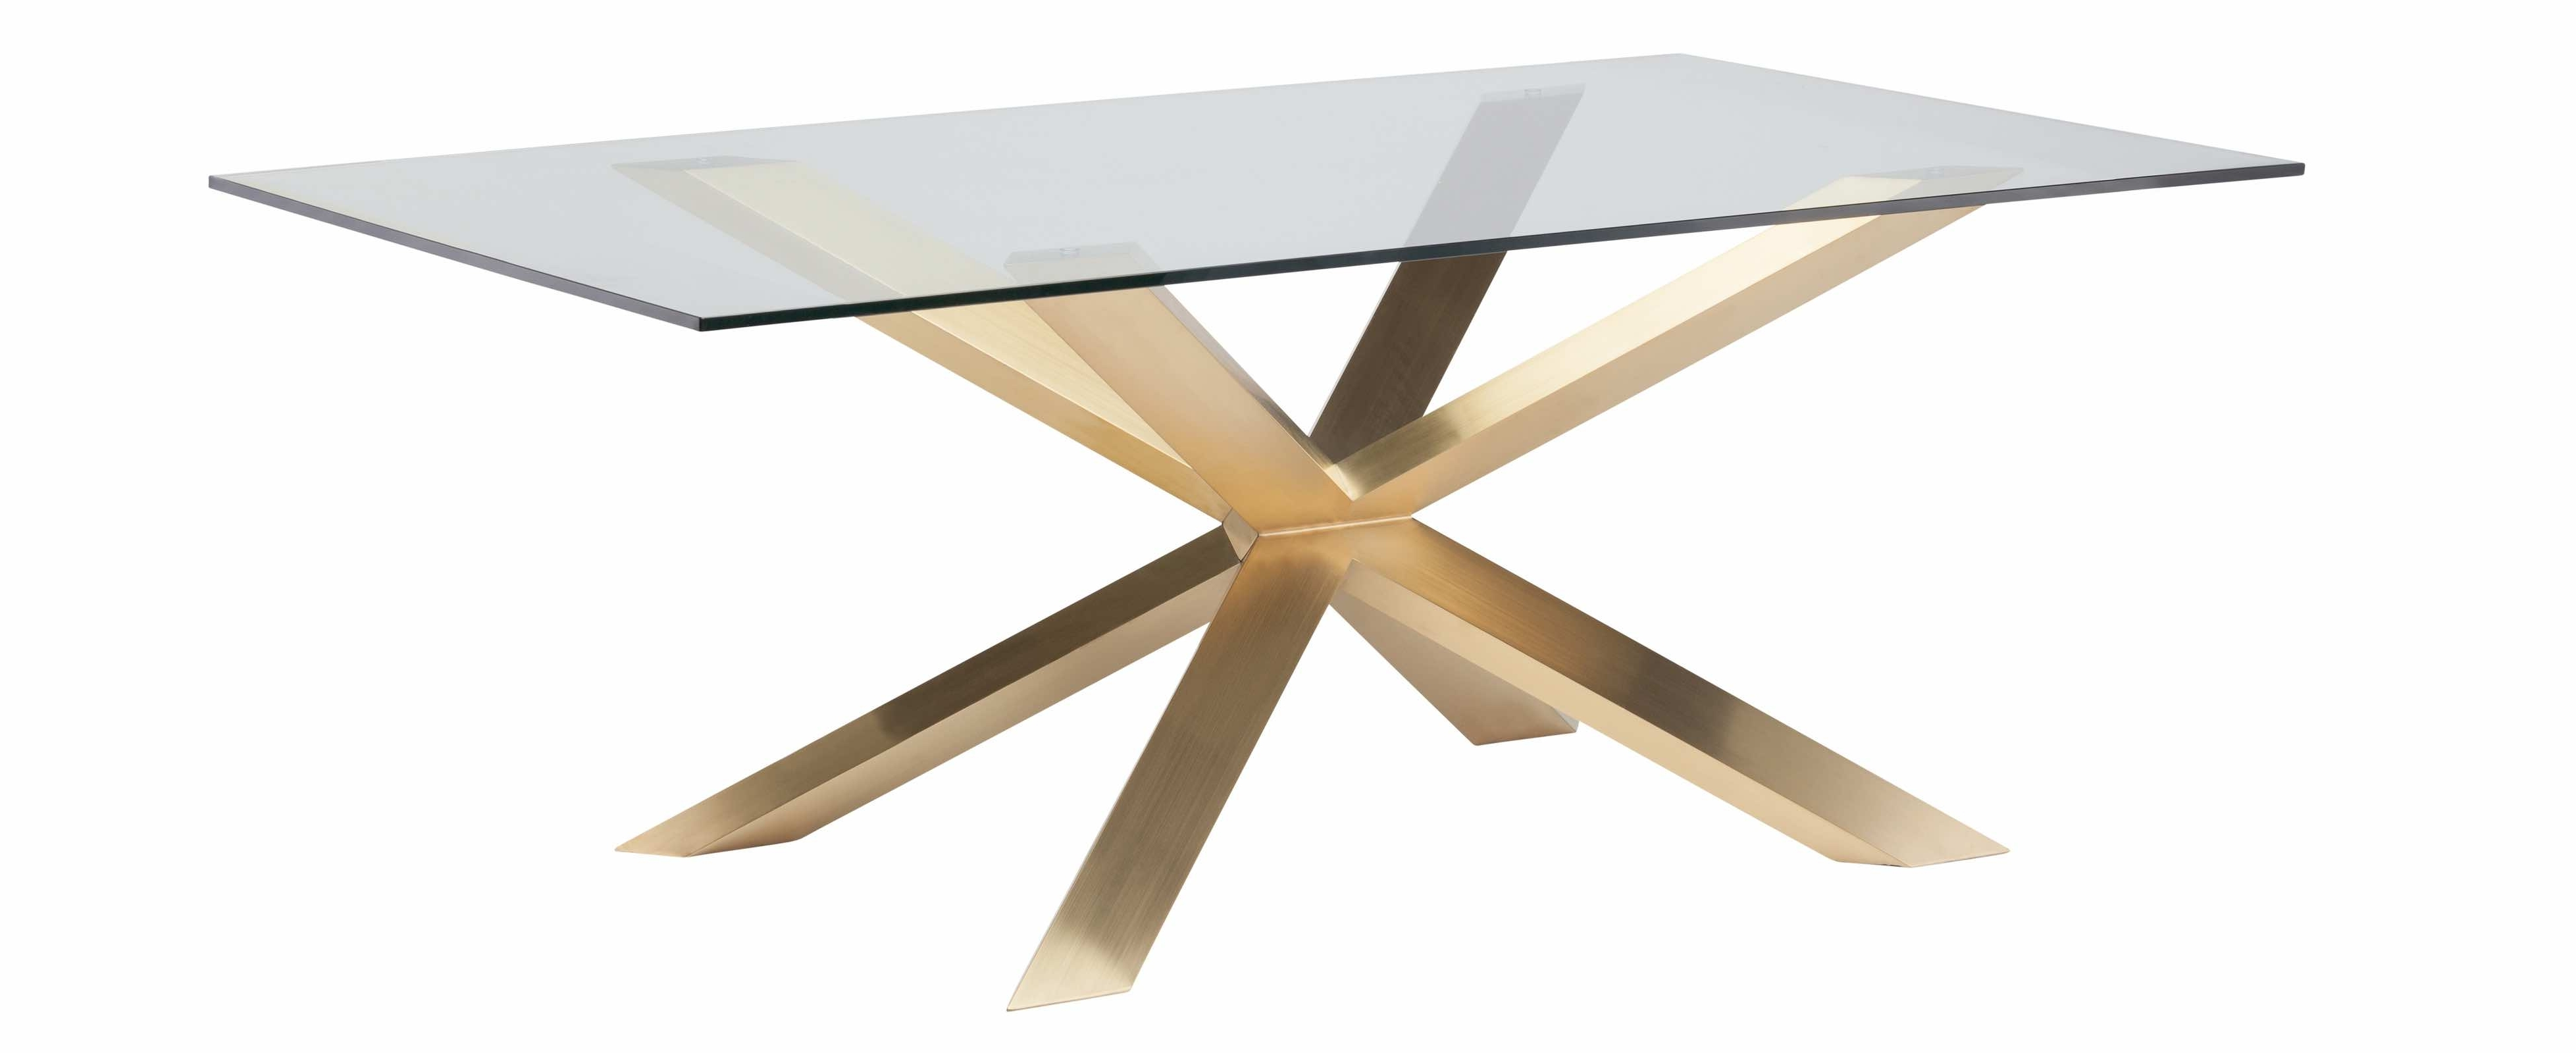 Best And Newest Couture 78 Inch Dining Table In Brushed Gold Stainless Steel And Glass Inside Portland 78 Inch Dining Tables (View 4 of 25)